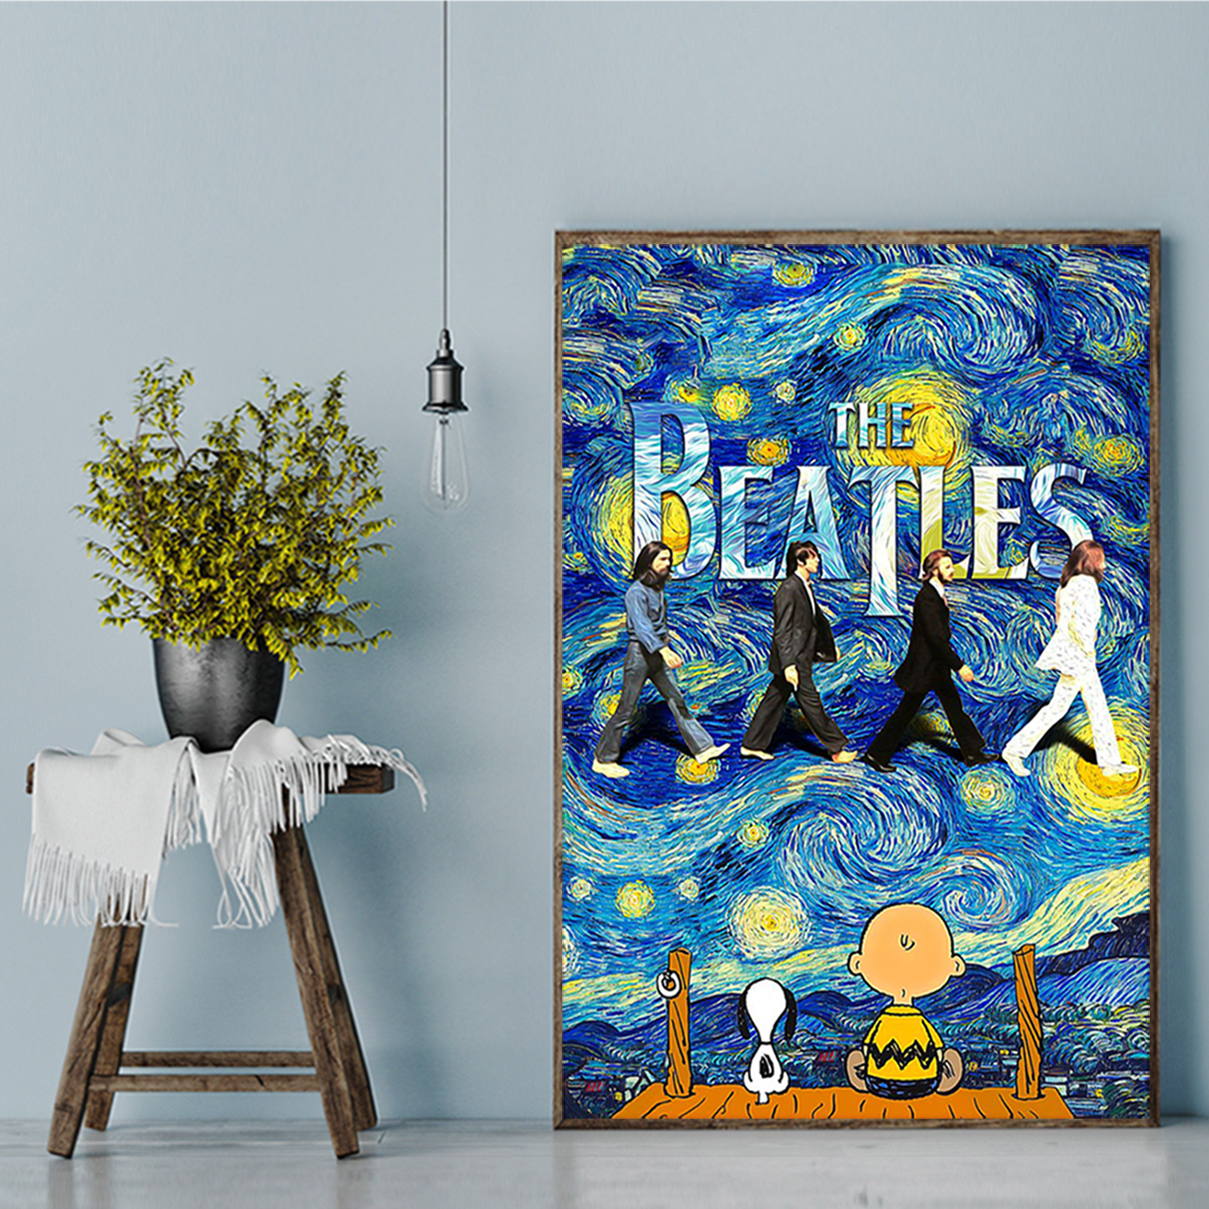 Snoopy charlie brown the beatles starry night van gogh poster A1